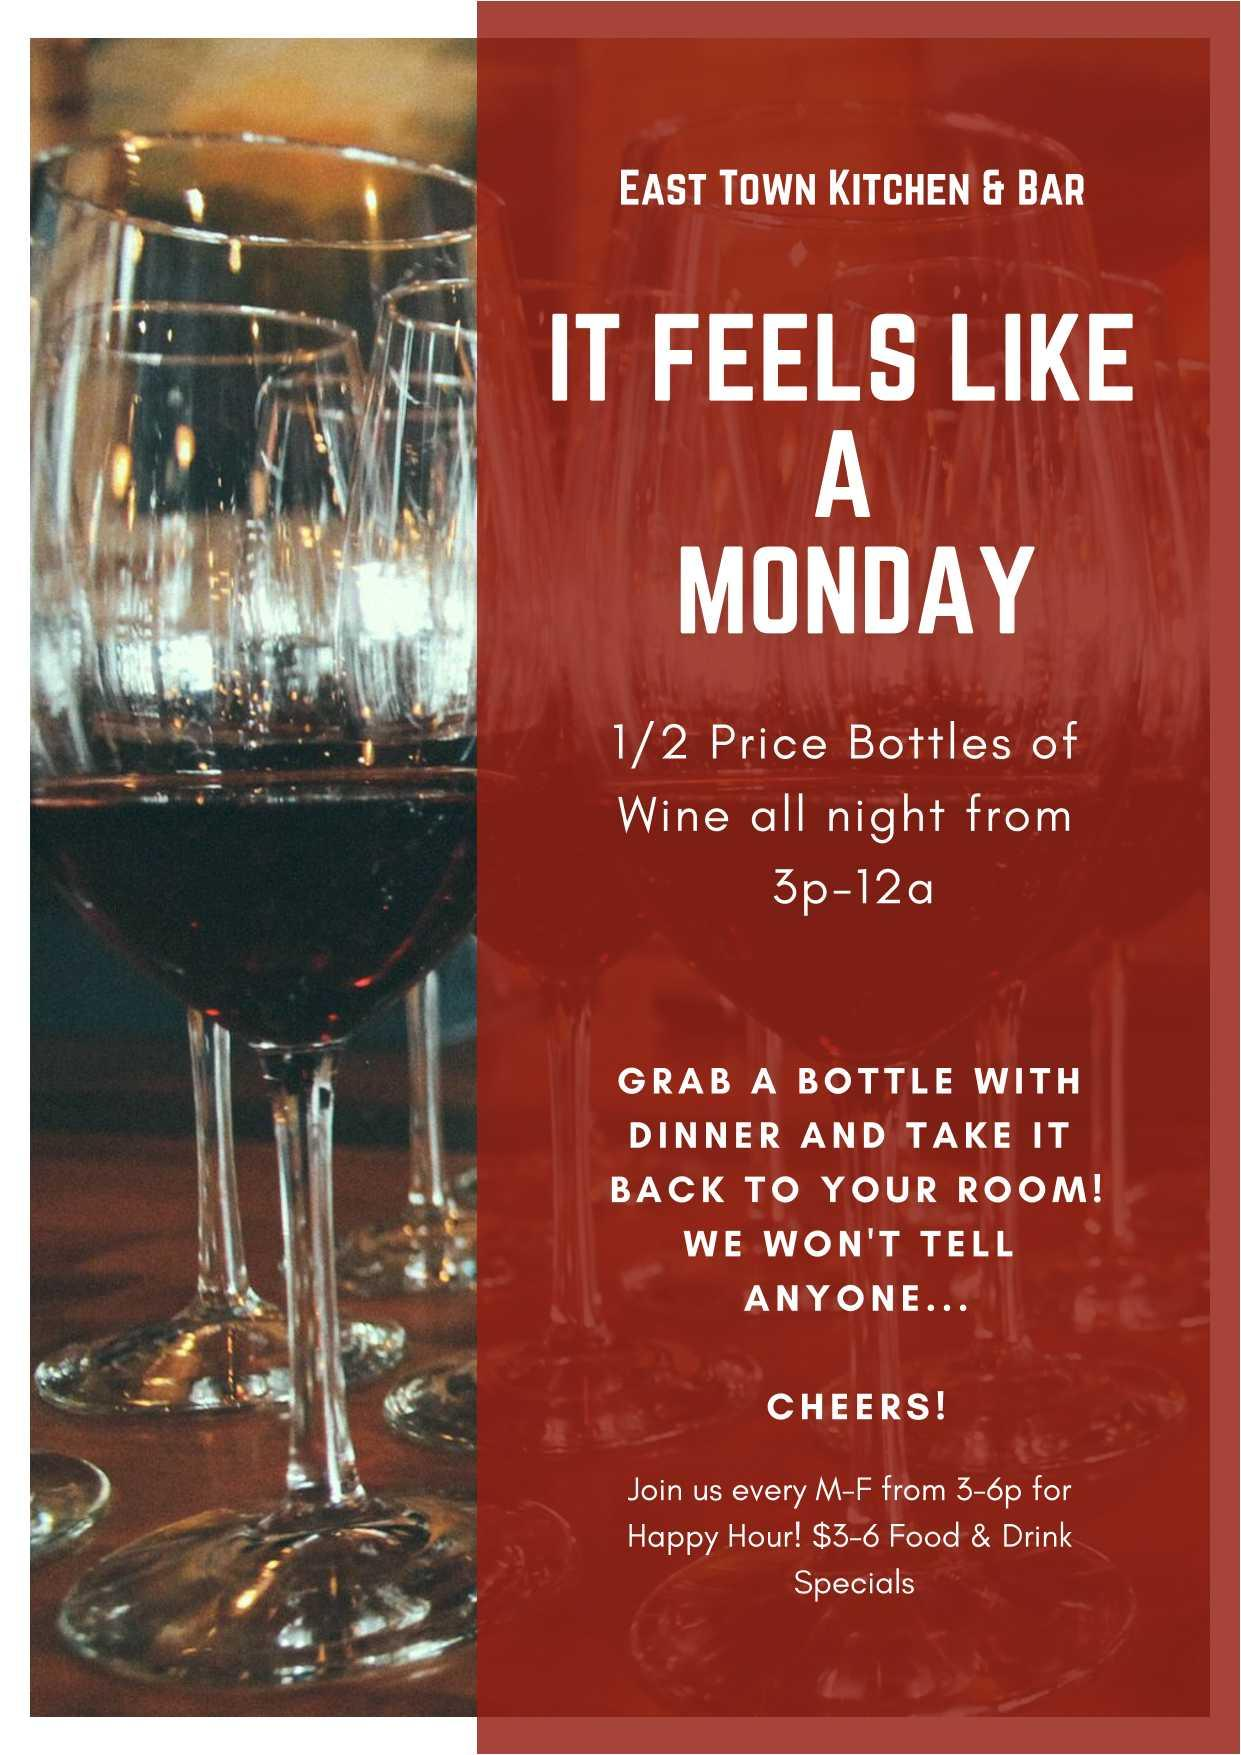 Wine specials every Monday at East Town Kitchen & Bar